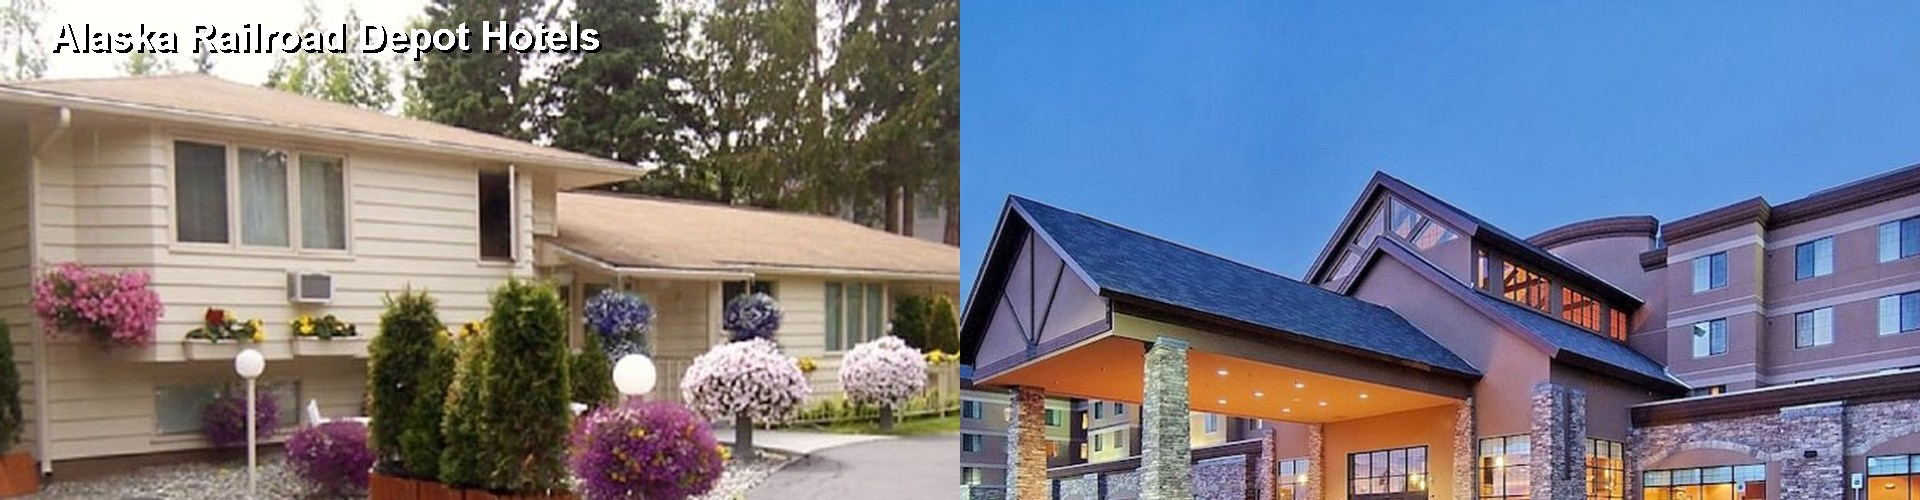 5 Best Hotels near Alaska Railroad Depot